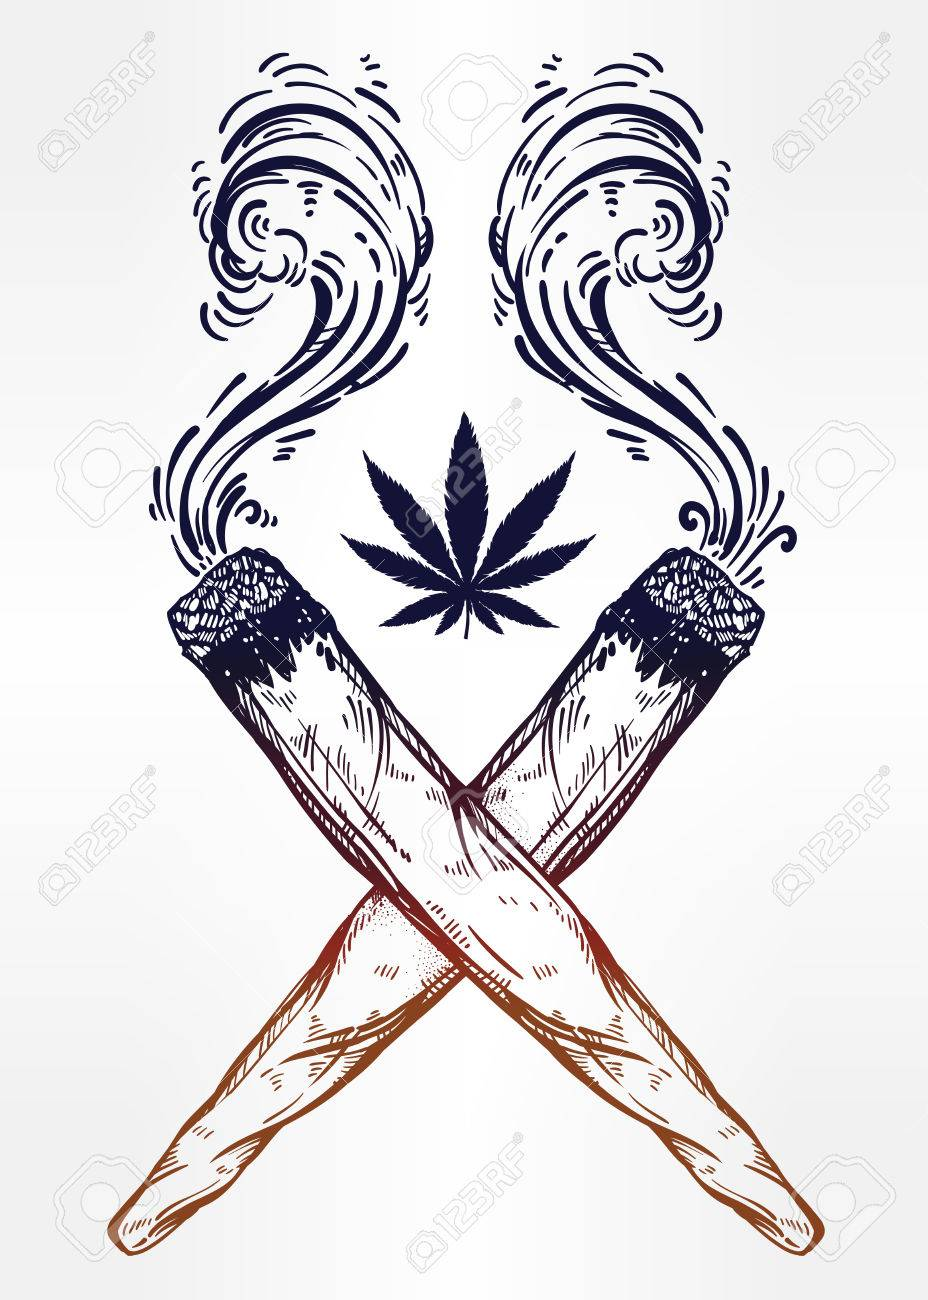 928x1300 Two Kinds Of Weed Joint Or Spliff Drawings. Royalty Free Cliparts